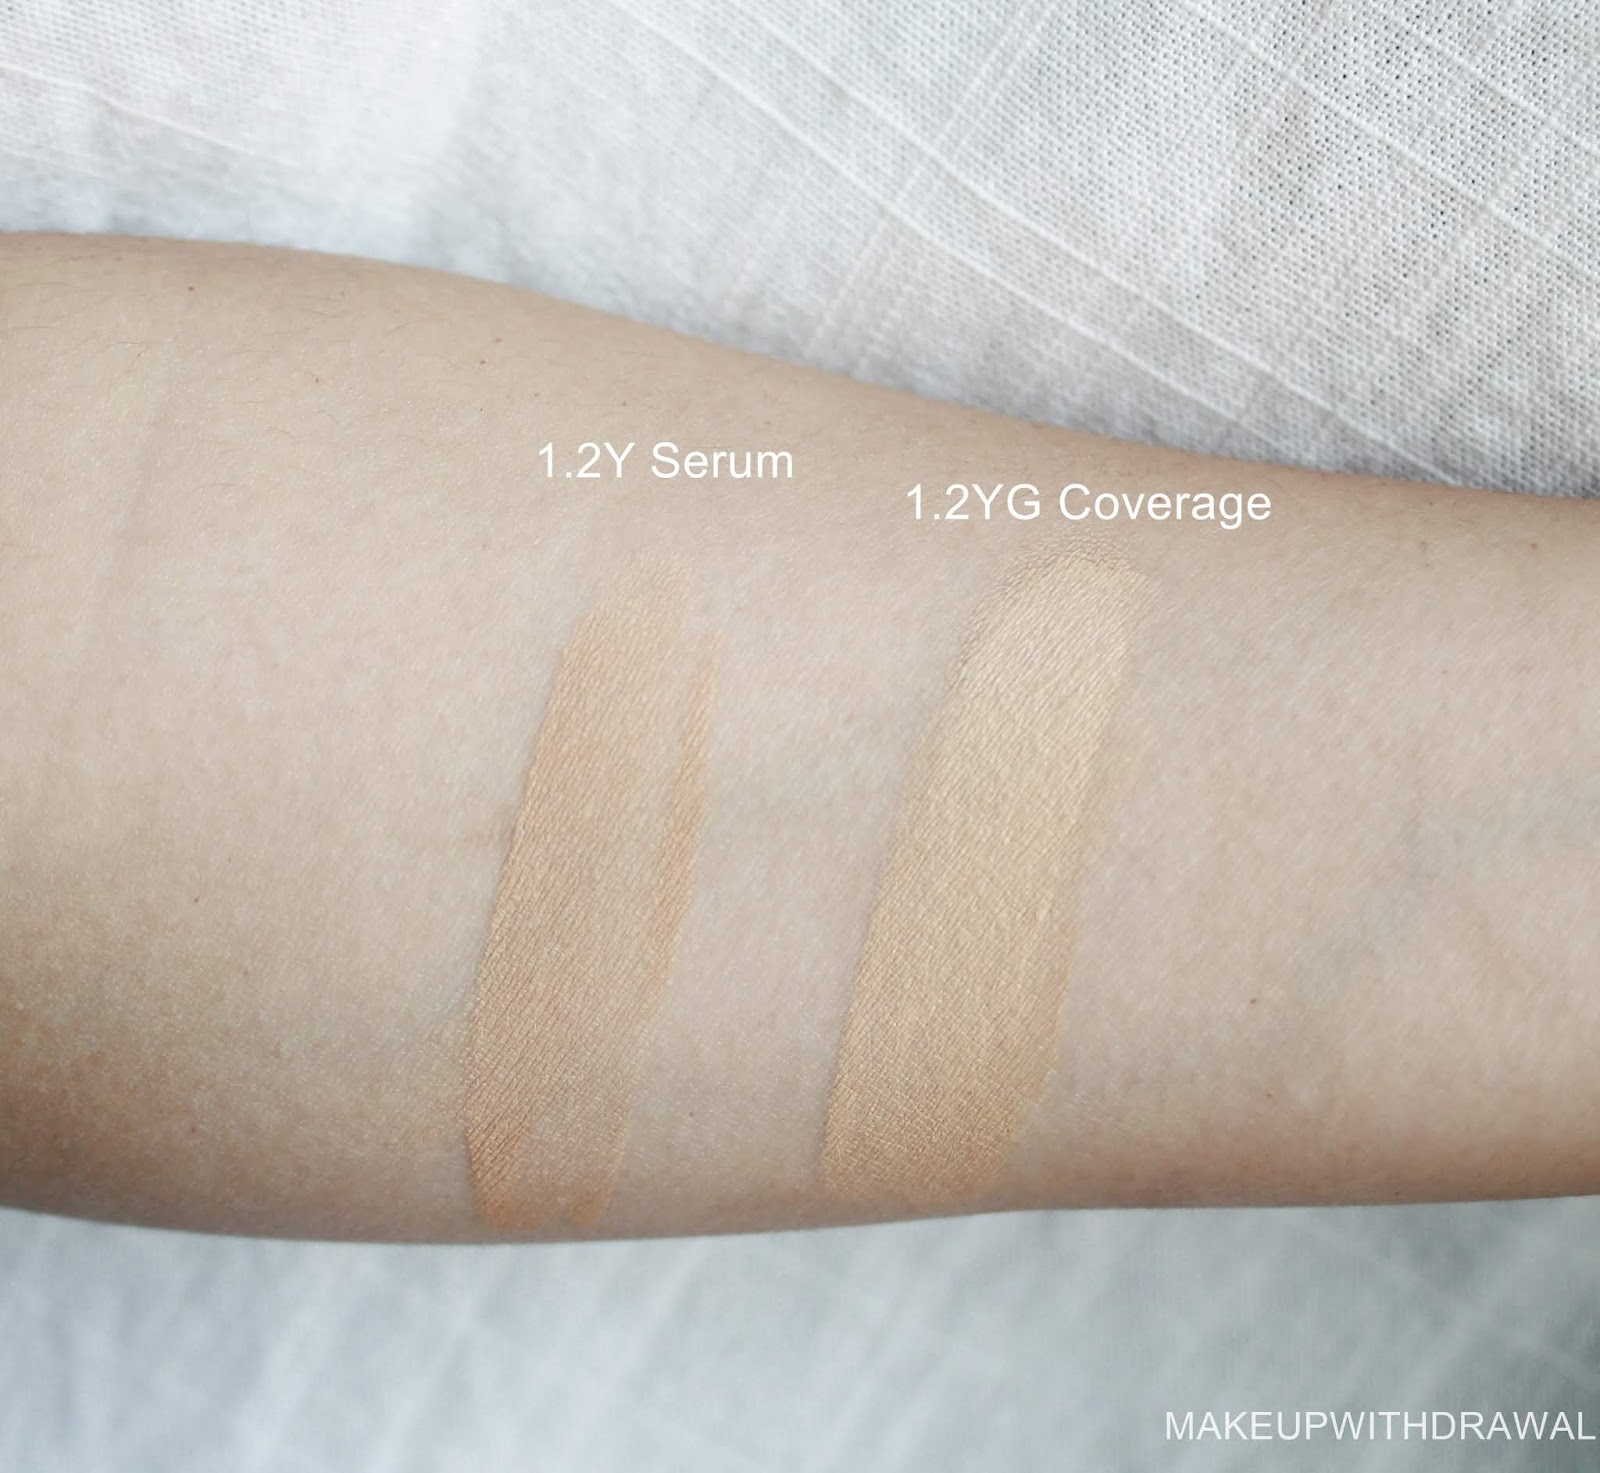 The Ordinary Serum Coverage Foundations Makeup Withdrawal